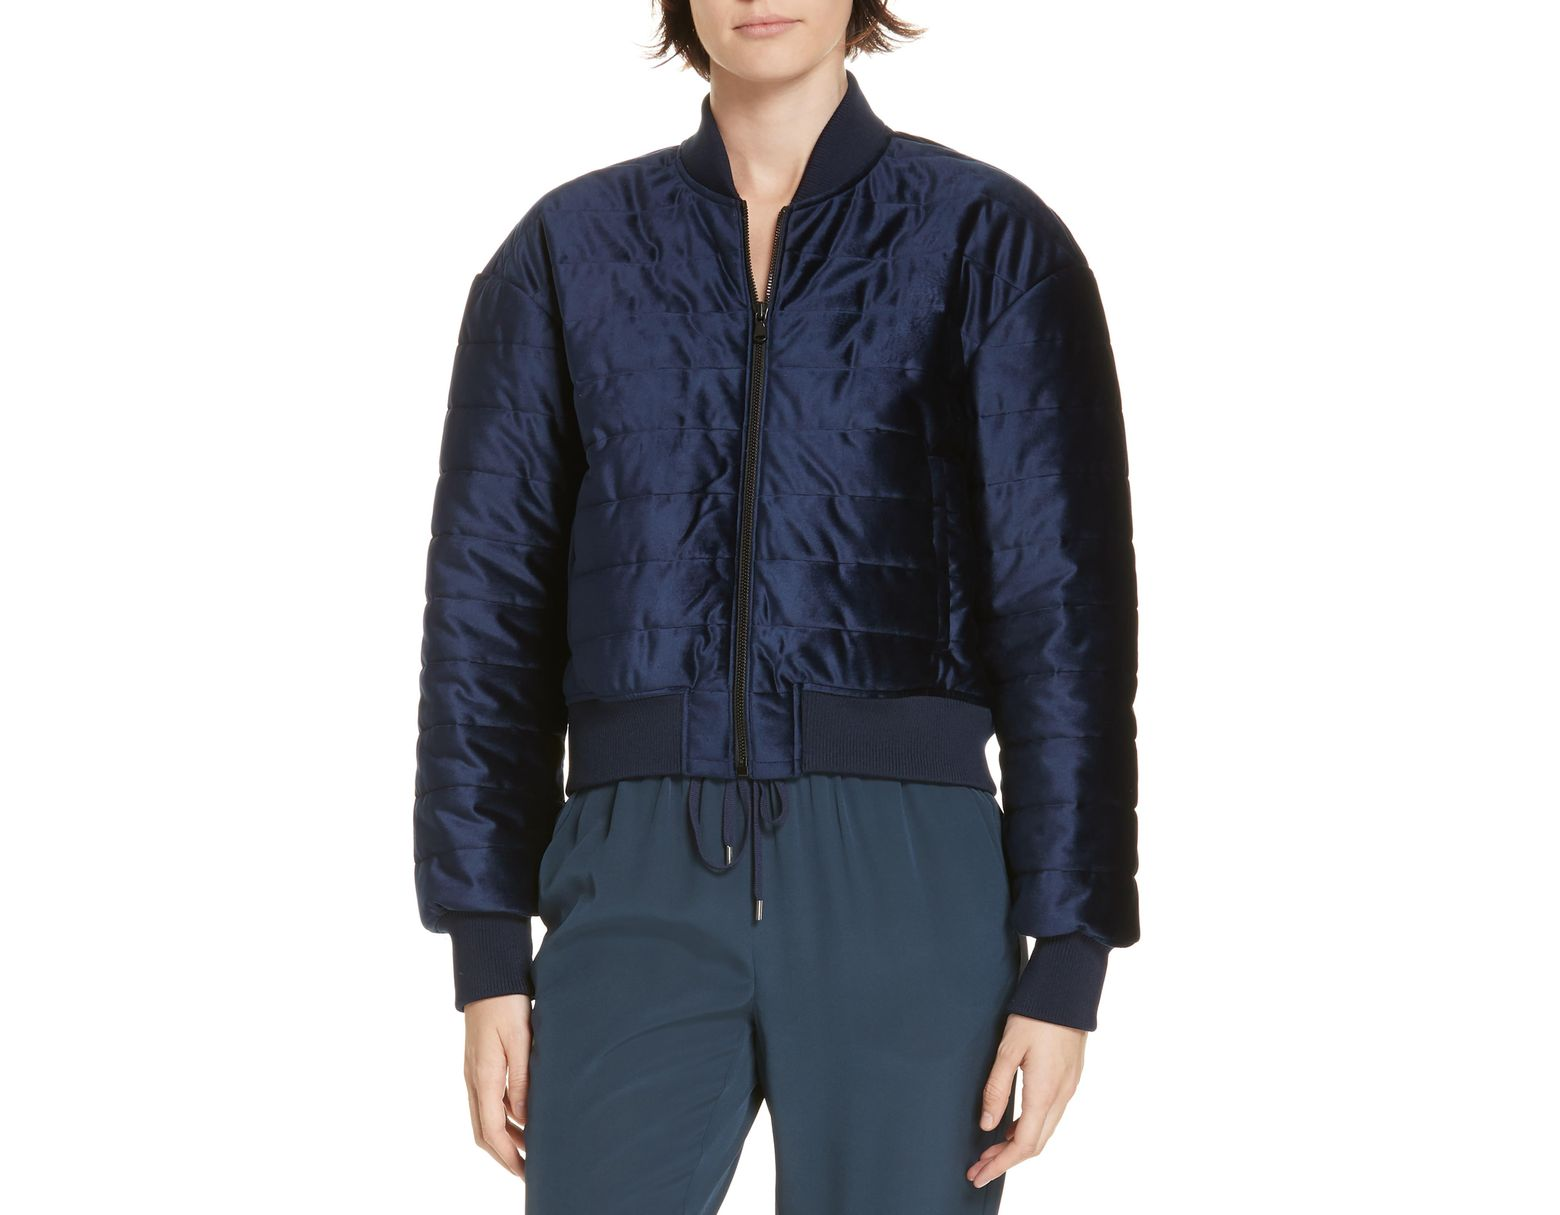 a6826046b Tibi Quilted Velvet Crop Bomber Jacket in Blue - Save 60% - Lyst